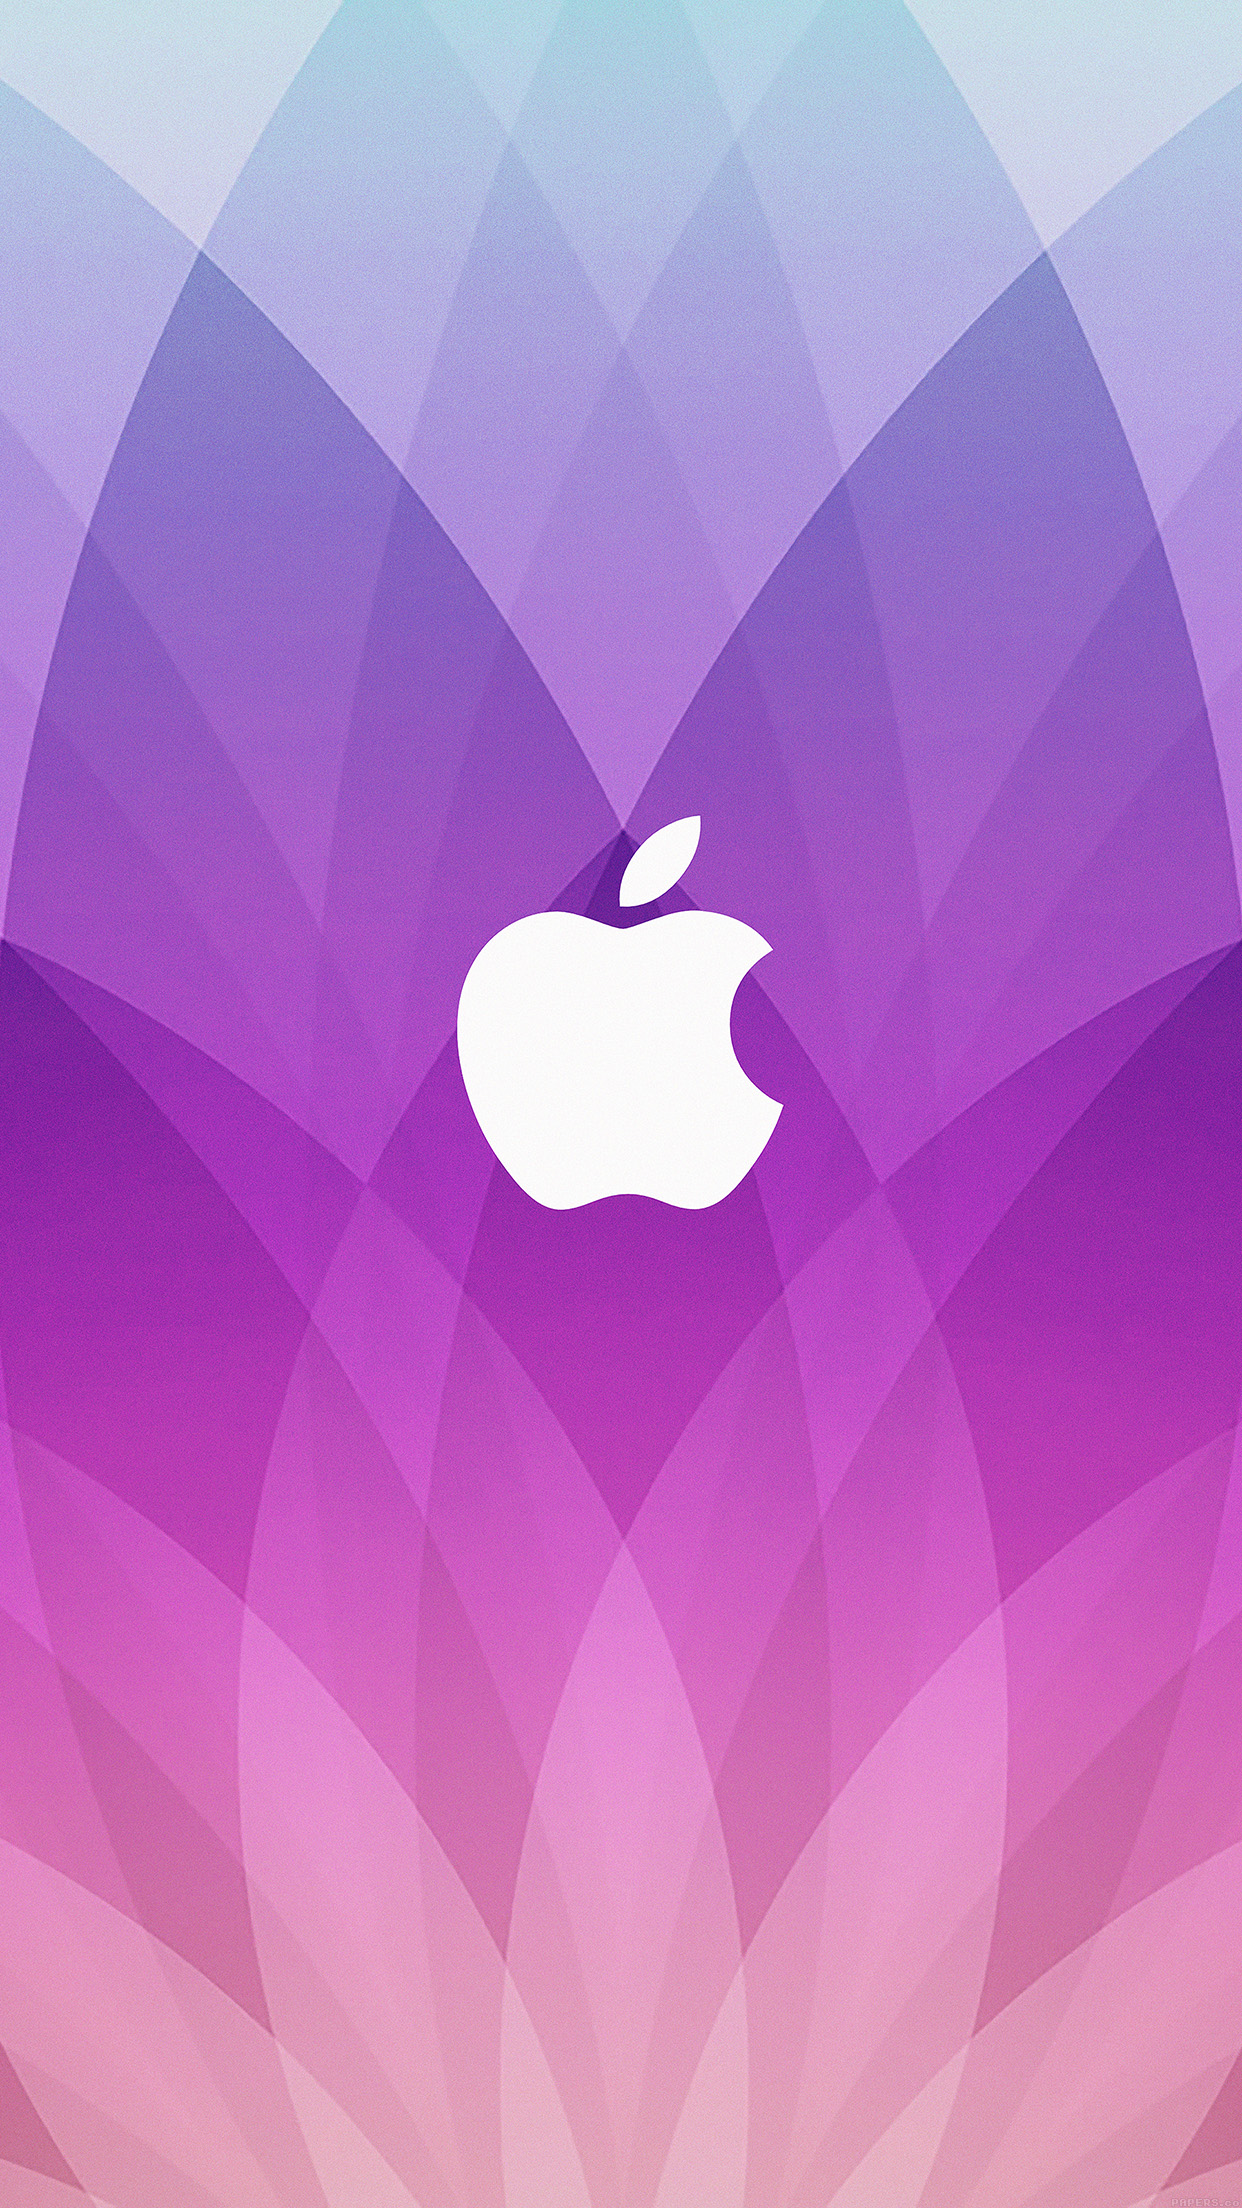 Iphone X Template Wallpaper Papers Co Iphone Wallpaper Vh52 Apple Event March 2015